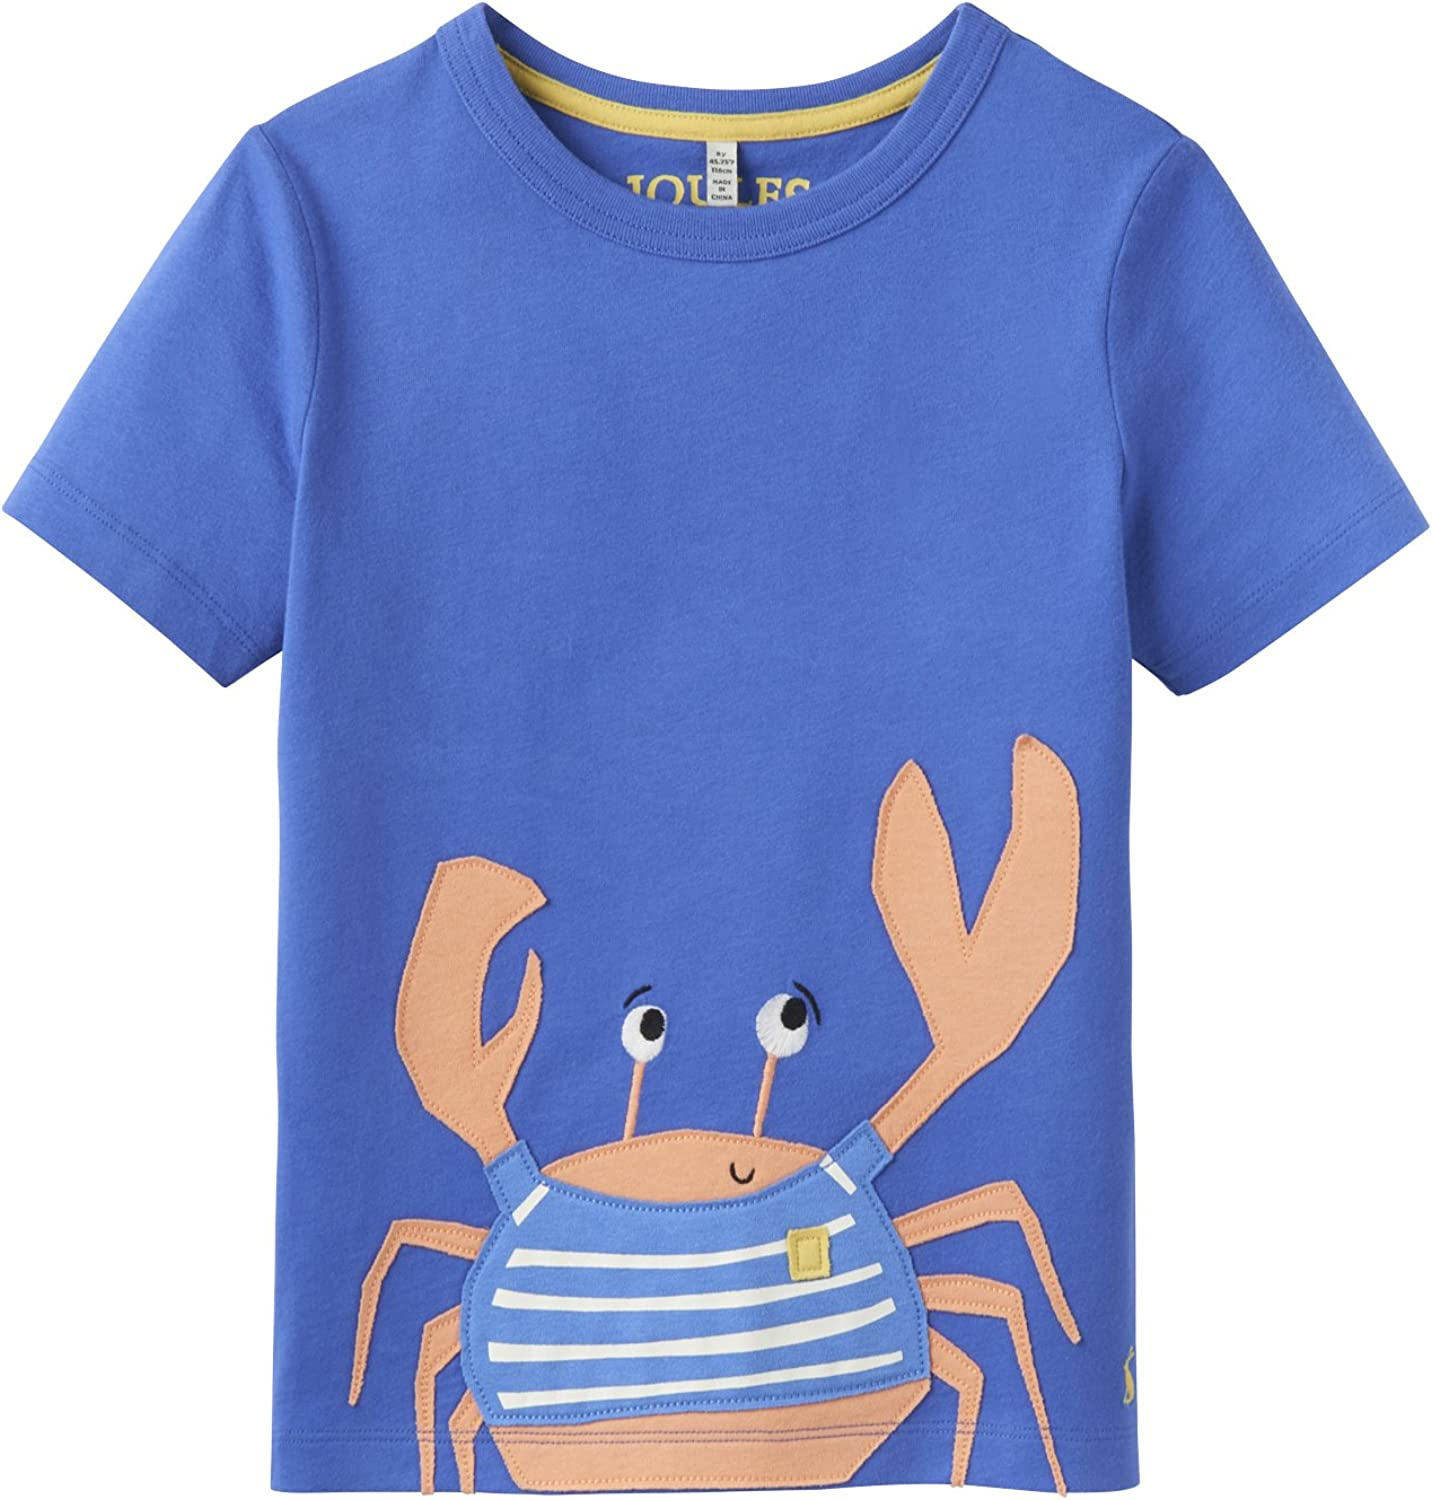 Joules Applique Jersey Top - Dazzling Blue Crab - 1 Year - 80 cm